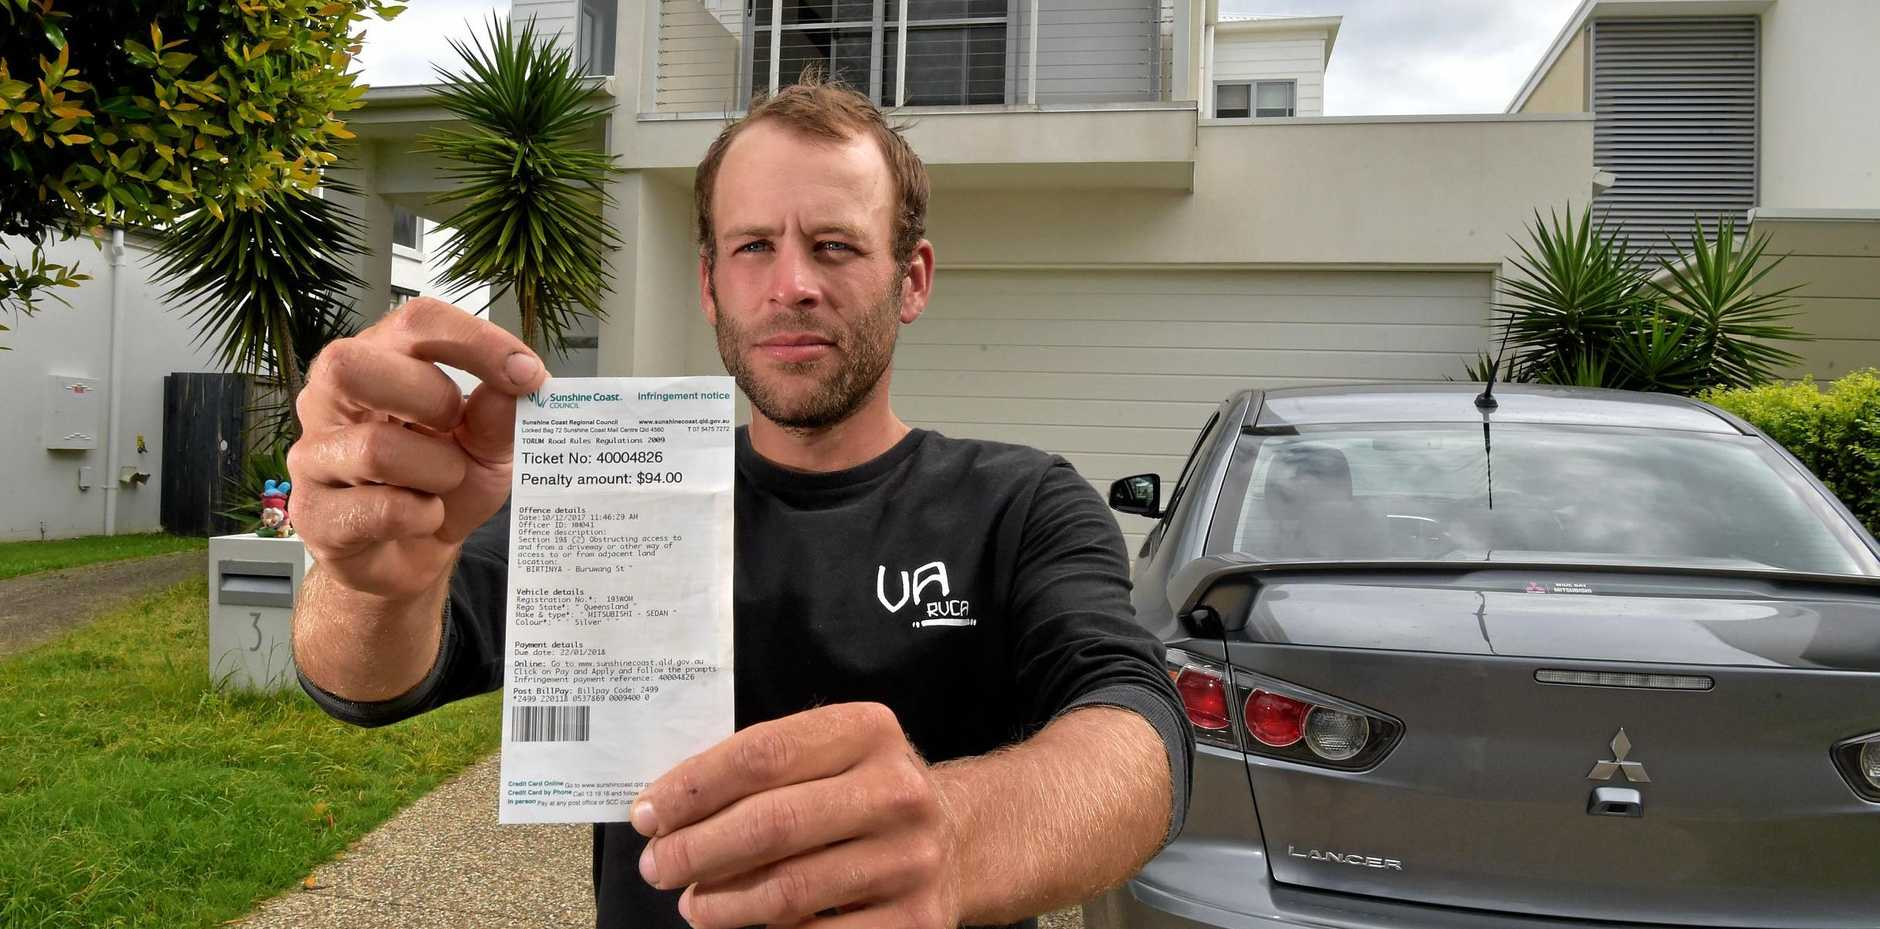 Reese Gerhard was one of several Coast residents caught up in the parking fine blitz. He was fined by the council for parking over the legal boundary of his driveway.